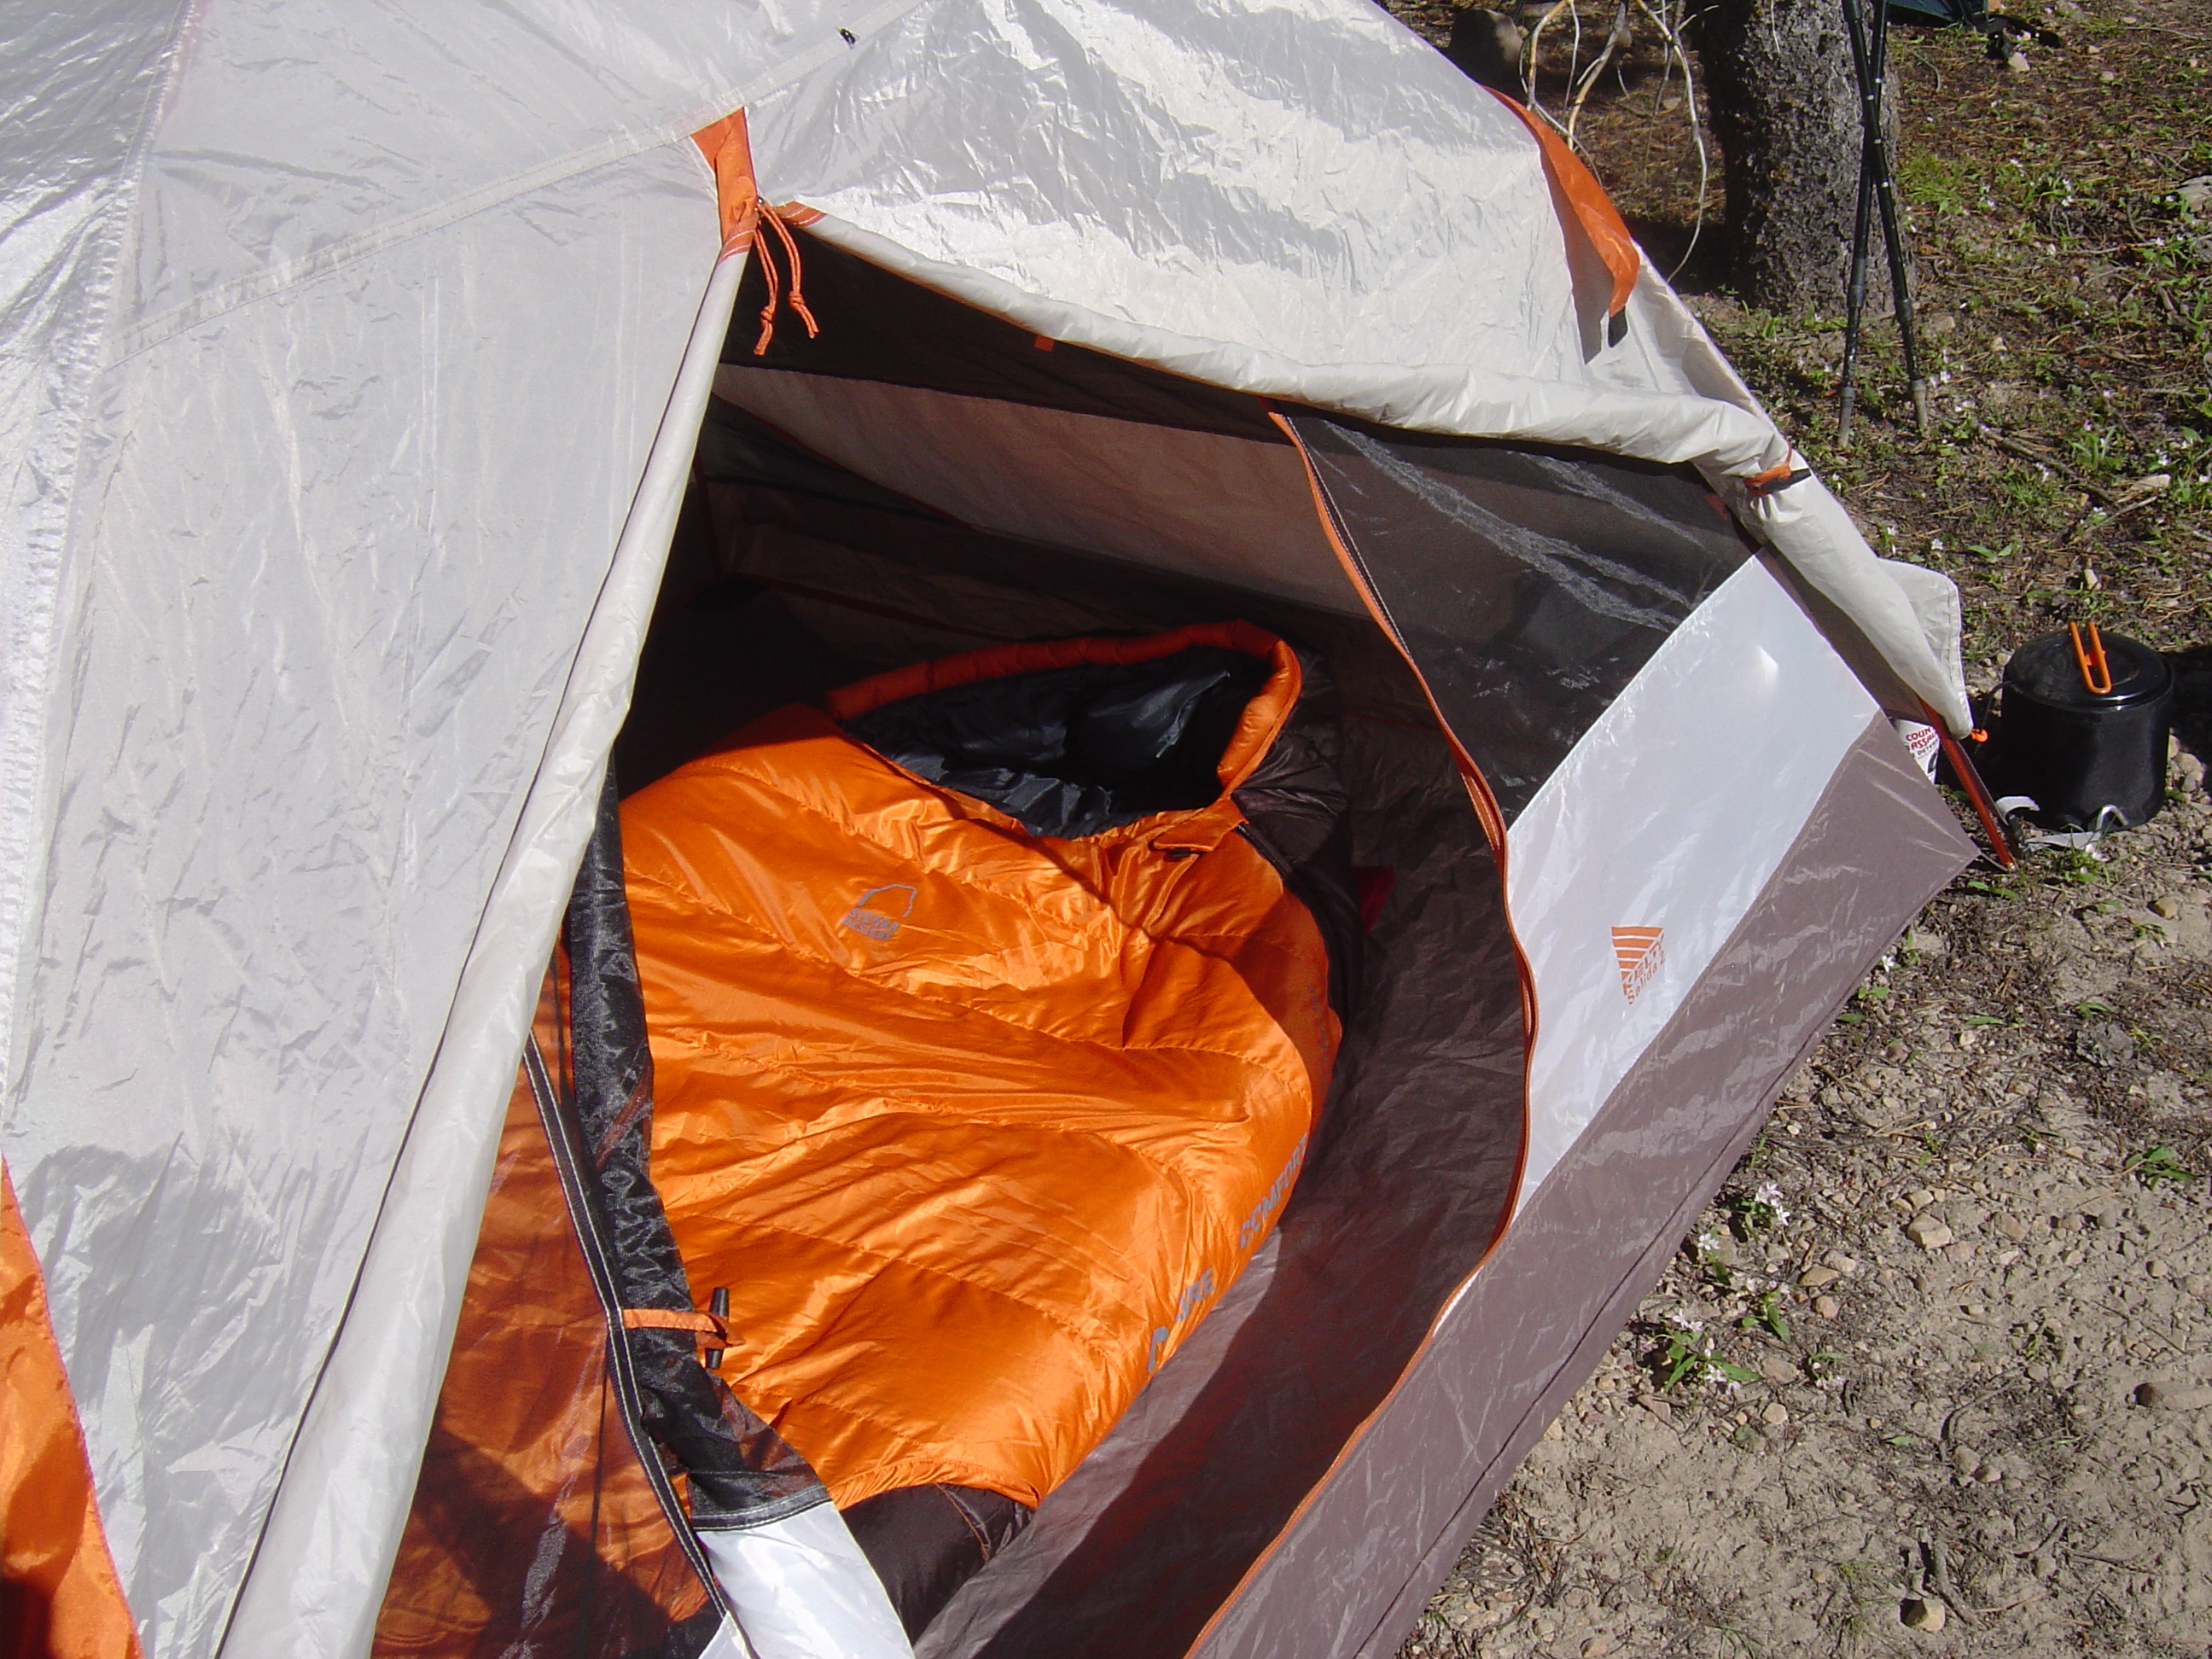 Choose a pad with insulation and a warm sleeping bag for mountain camping (photo: Ryan Malavolta)